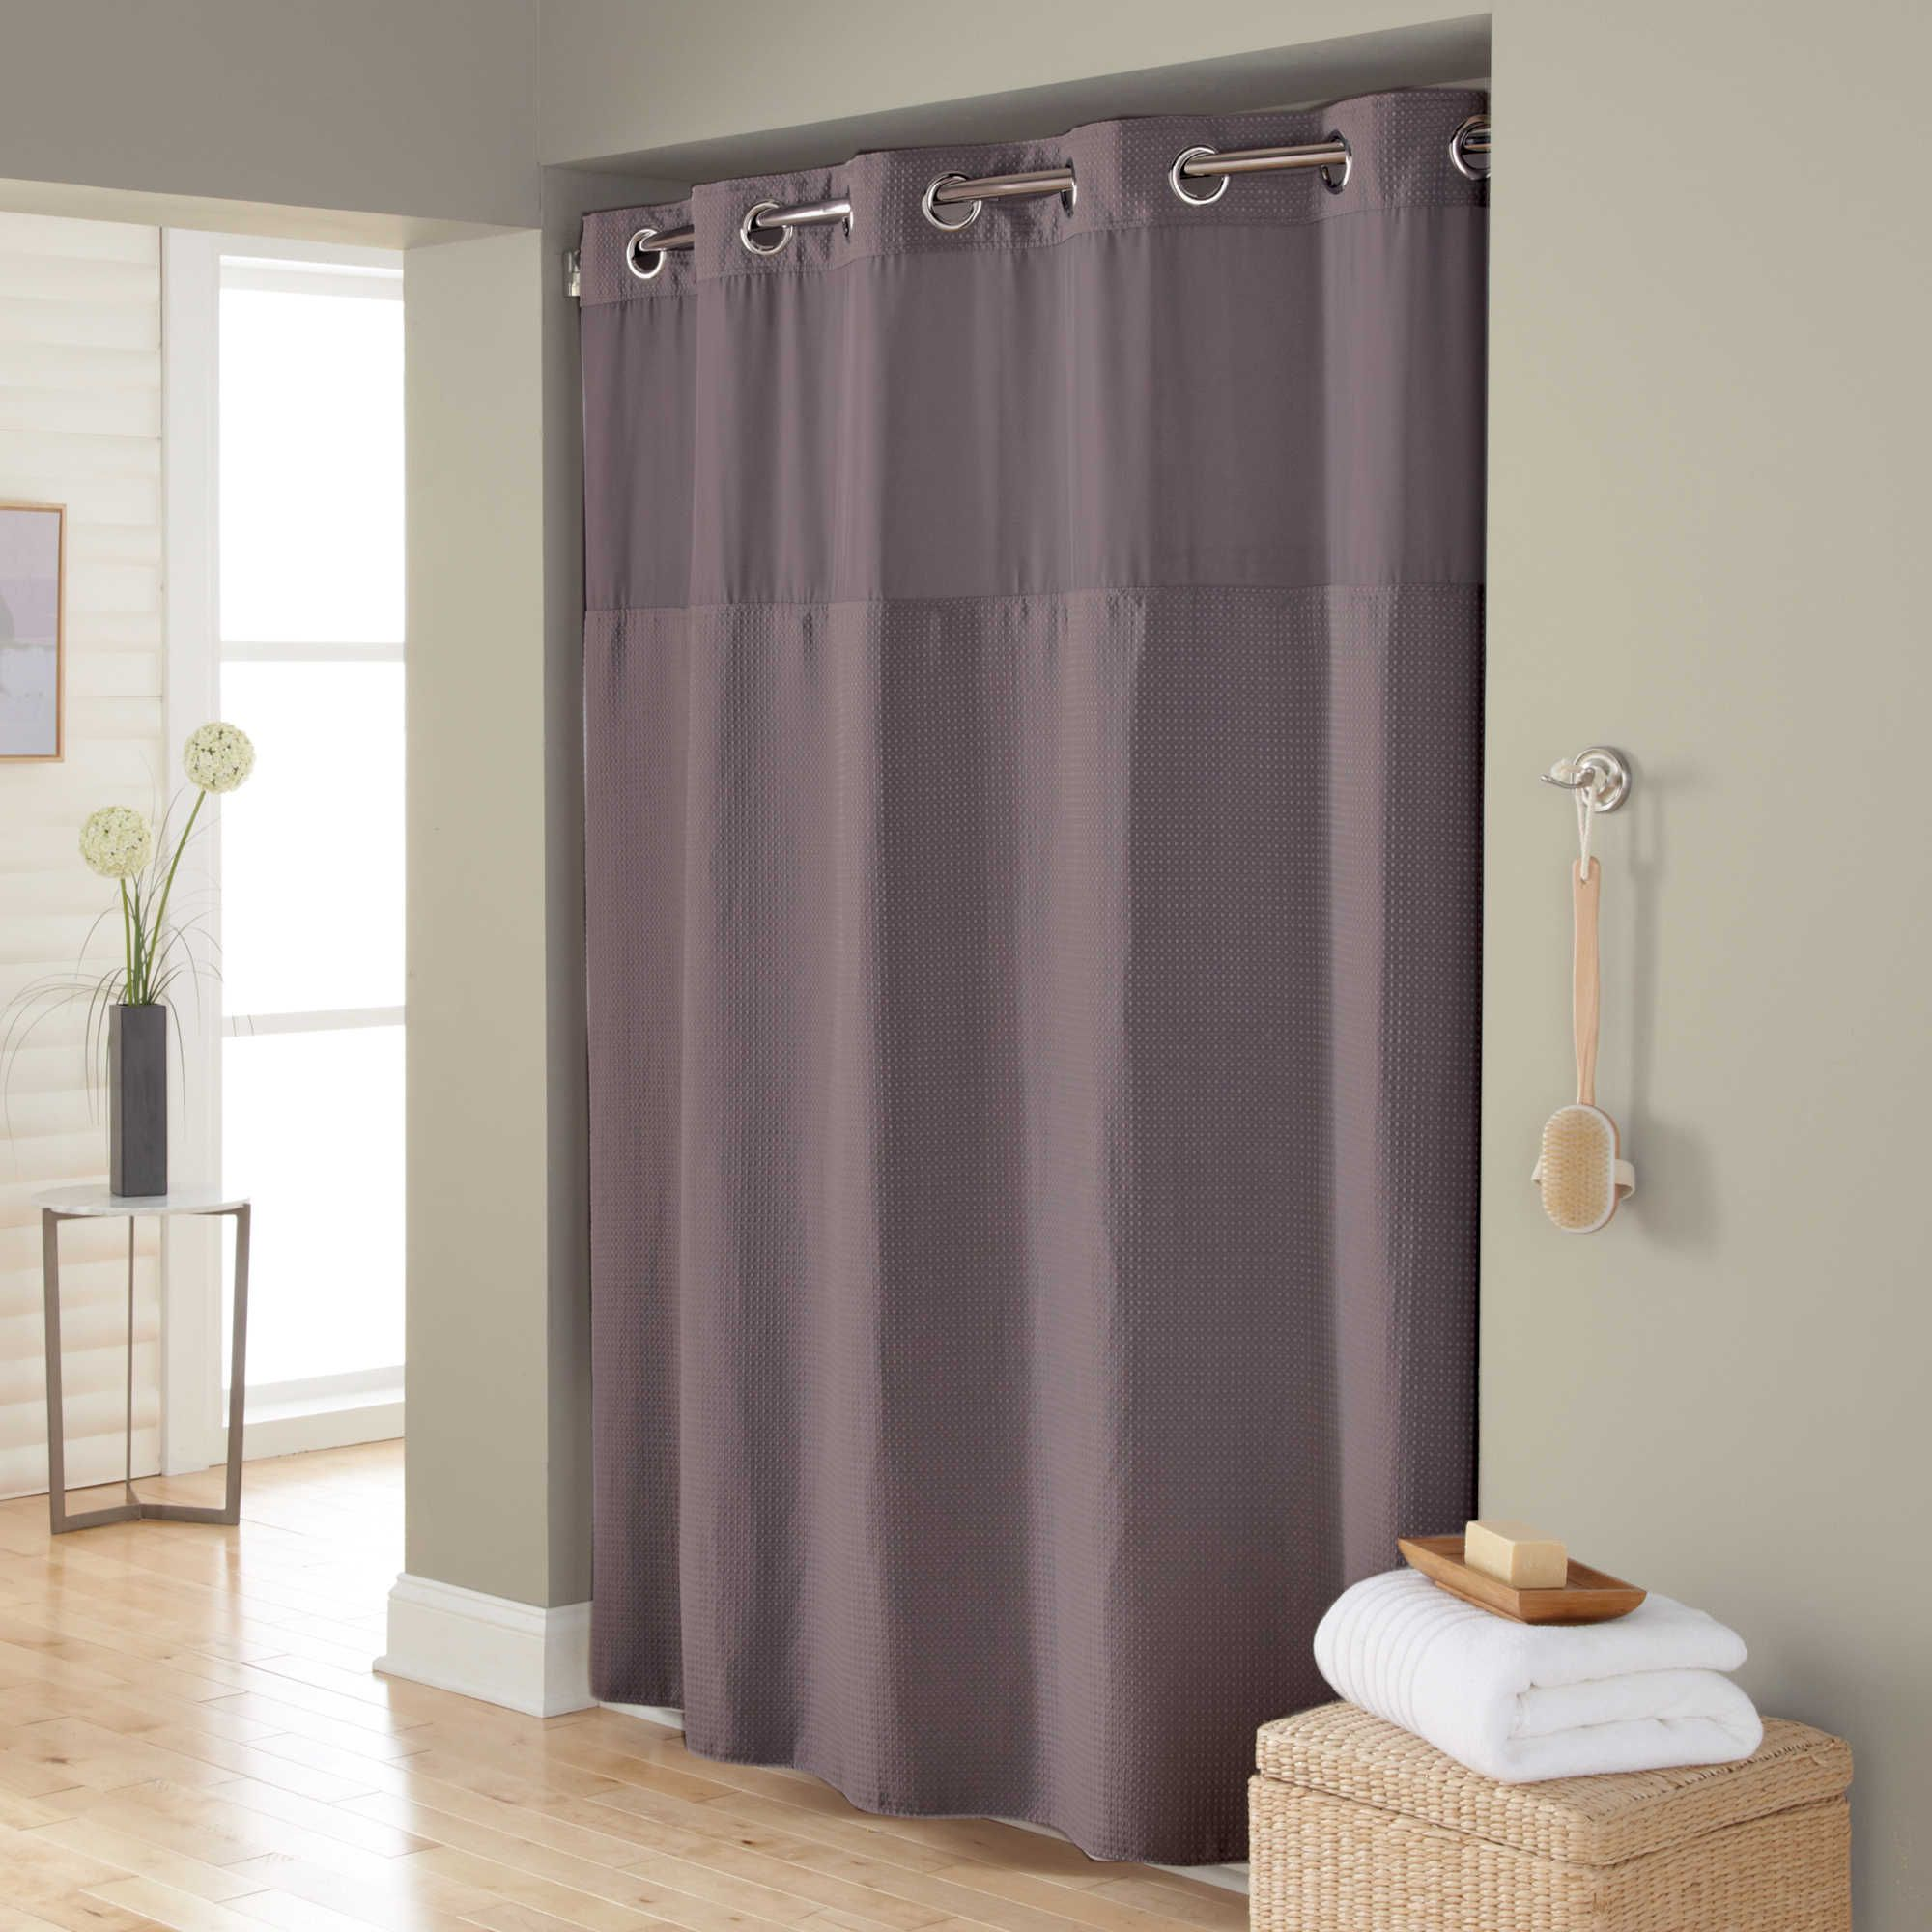 Hookless Waffle Fabric Shower Curtain And Liner Set Kids Shower